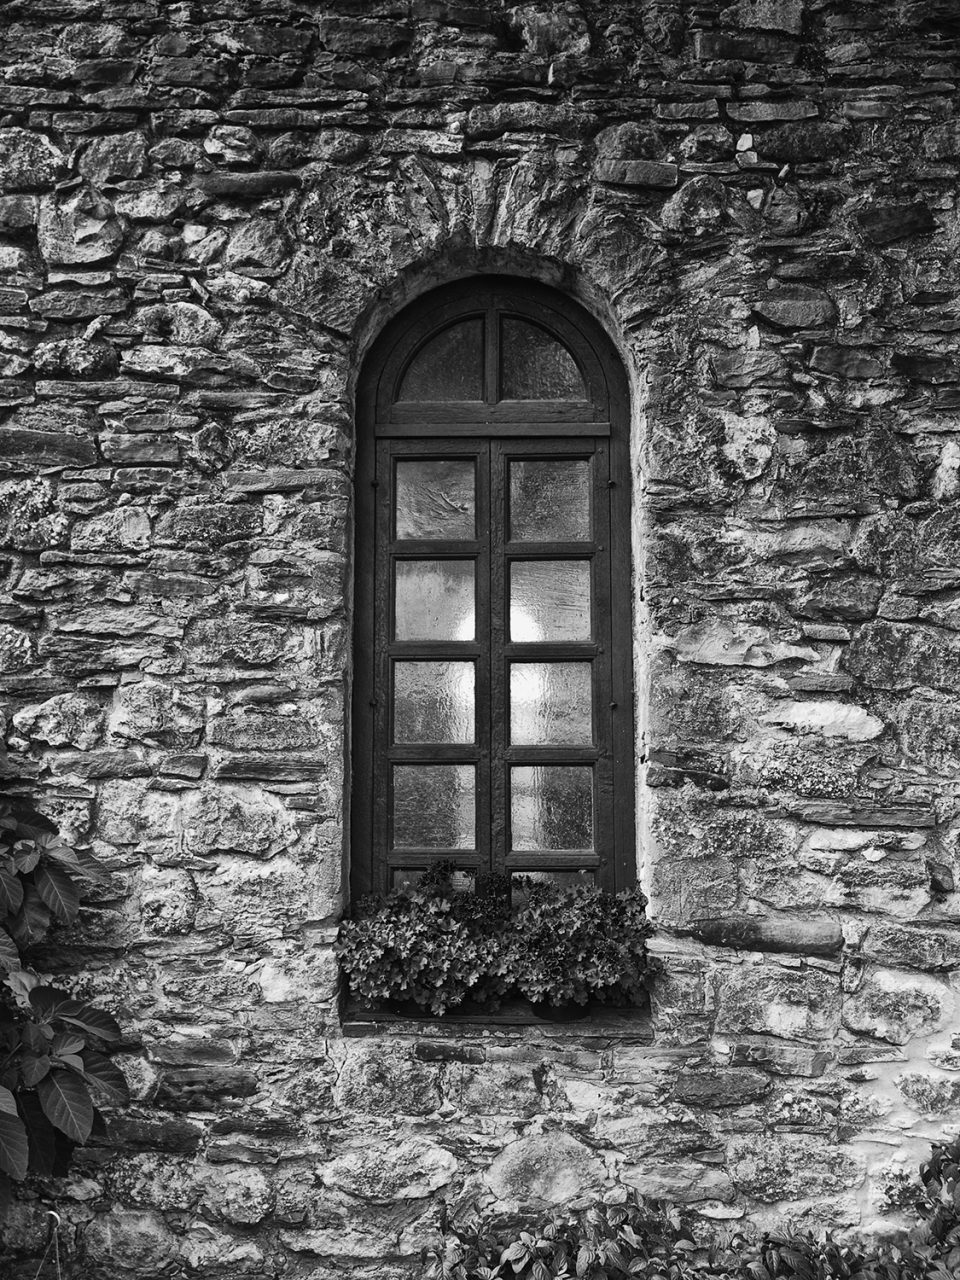 Window of an Old Spanish Mission in San Antonio, Texas. Buy a fine art print of this photo here.